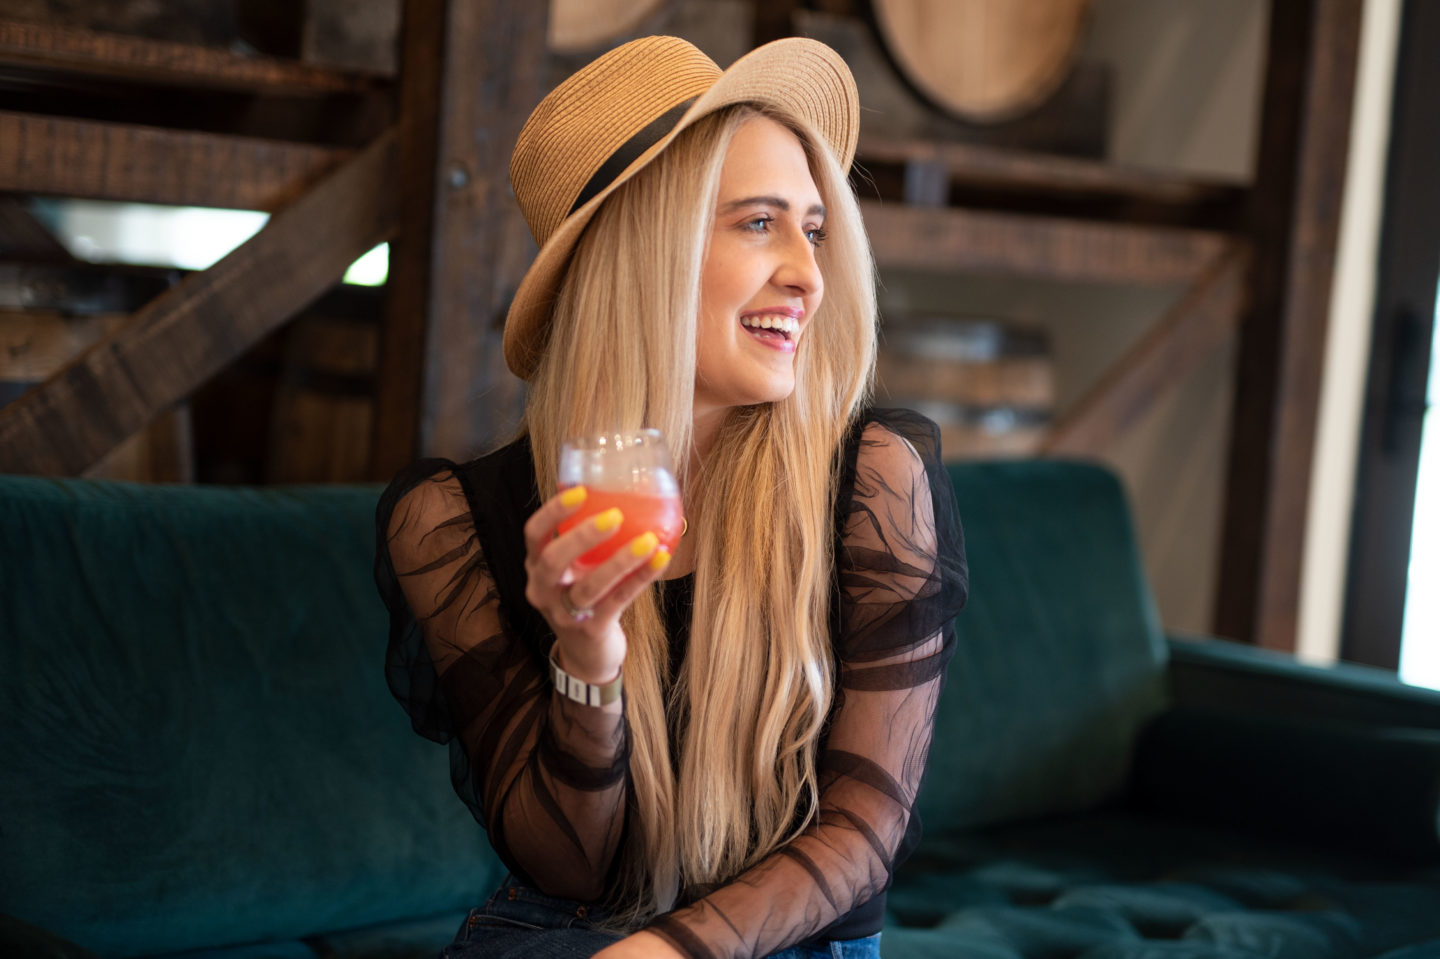 girl in a hat holding a drink smiling